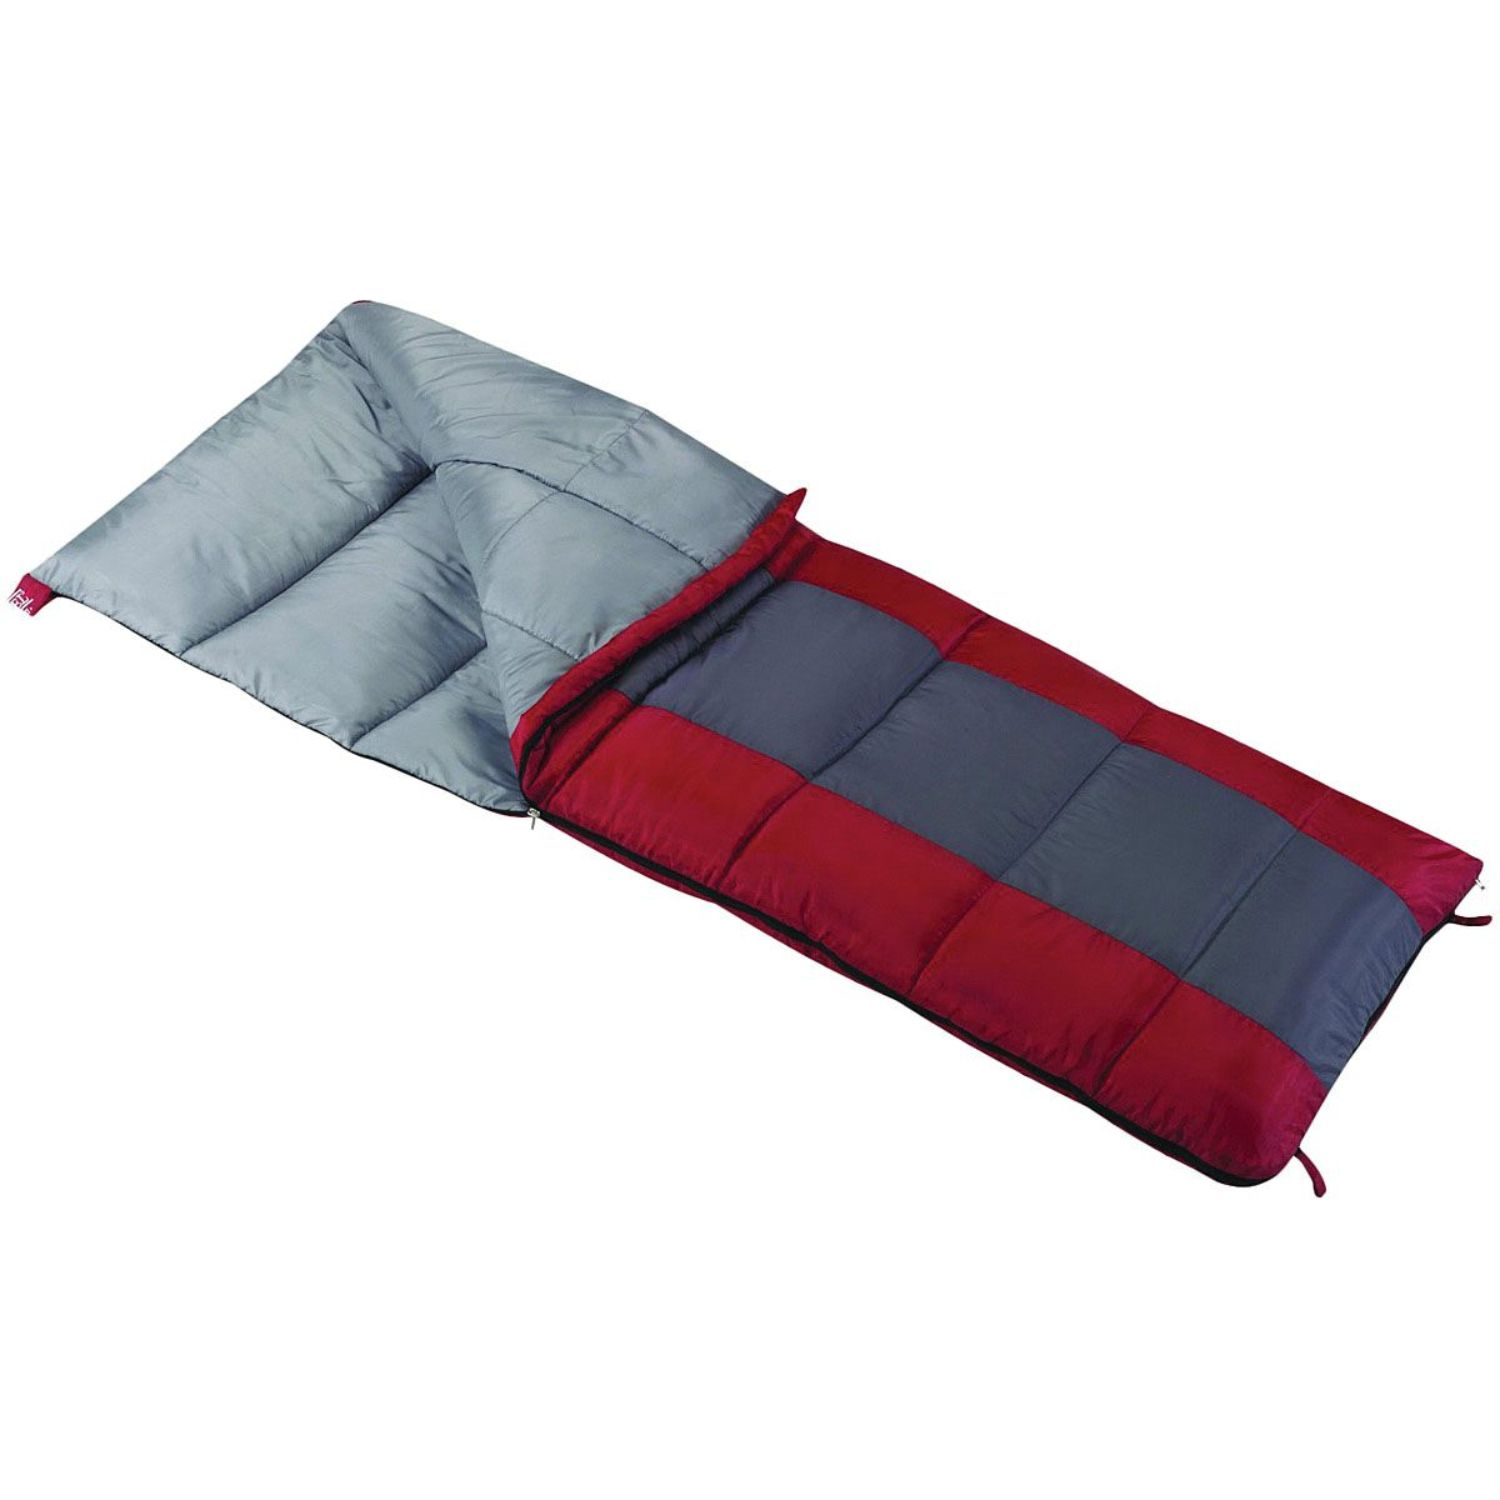 Sleeping Bags and Cots